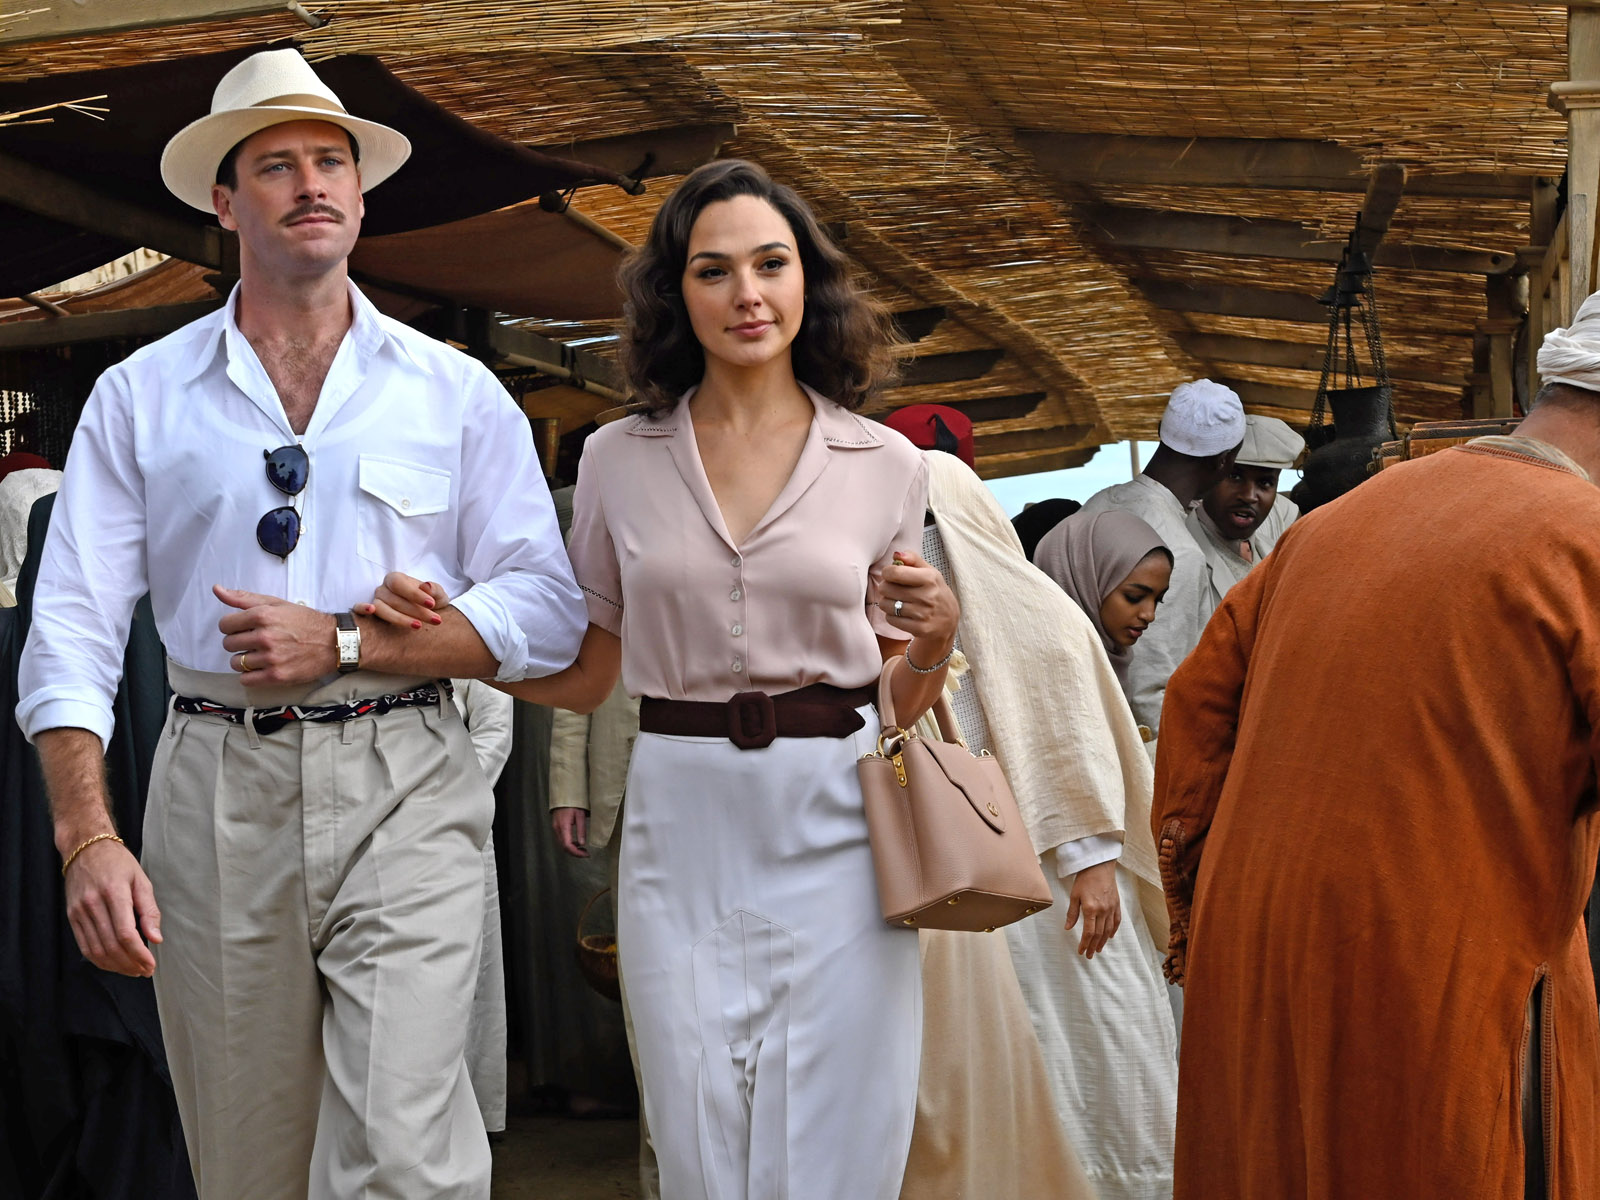 Armie Hammer as Simon Doyle and Gal Gadot as Linnet Ridgeway in 20th Century Studios' DEATH ON THE NILE, a mystery-thriller directed by Kenneth Branagh based on Agatha Christie's 1937 novel. Photo by Rob Youngson. © 2020 Twentieth Century Fox Film Corporation. All Rights Reserved.